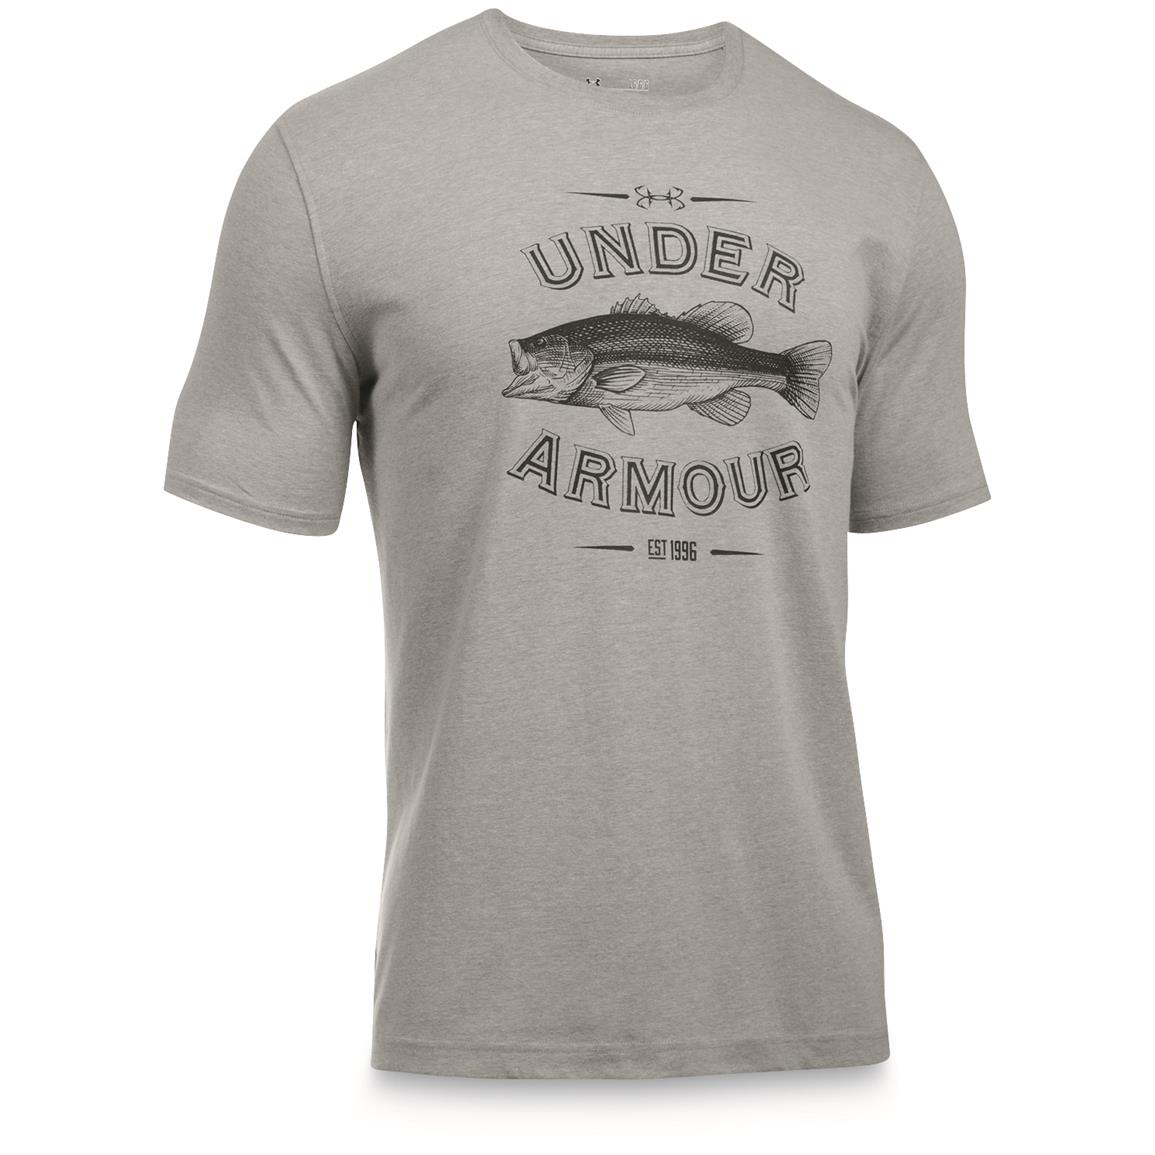 Under Armour Men's Classic Fish Tees, Bass/True Gray Heather